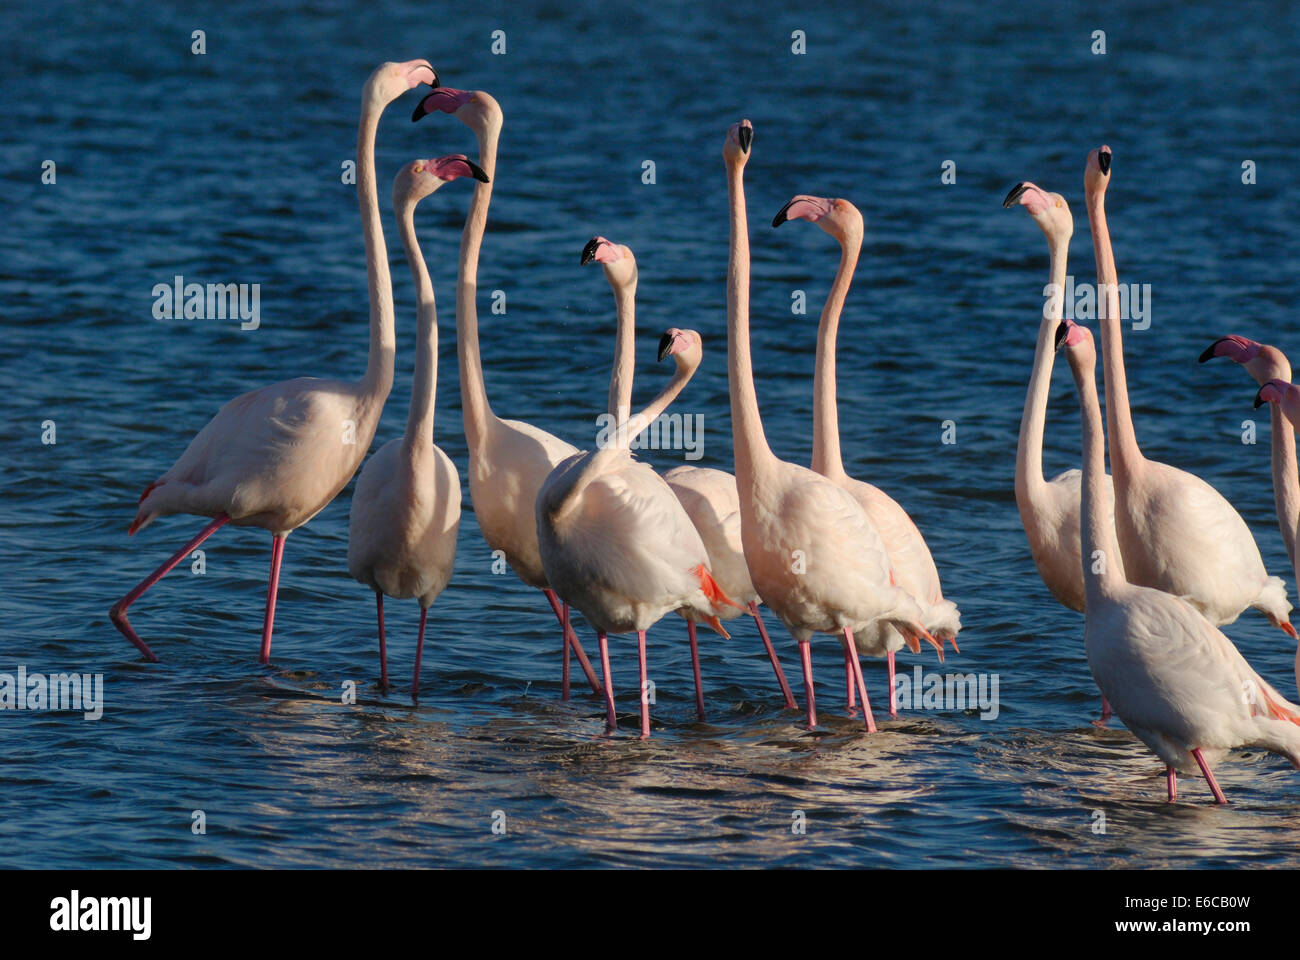 Flock of Greater Flamingoes (Phoenicopterus ruber) during mating season, Berre l'Etang, Provence, France - Stock Image